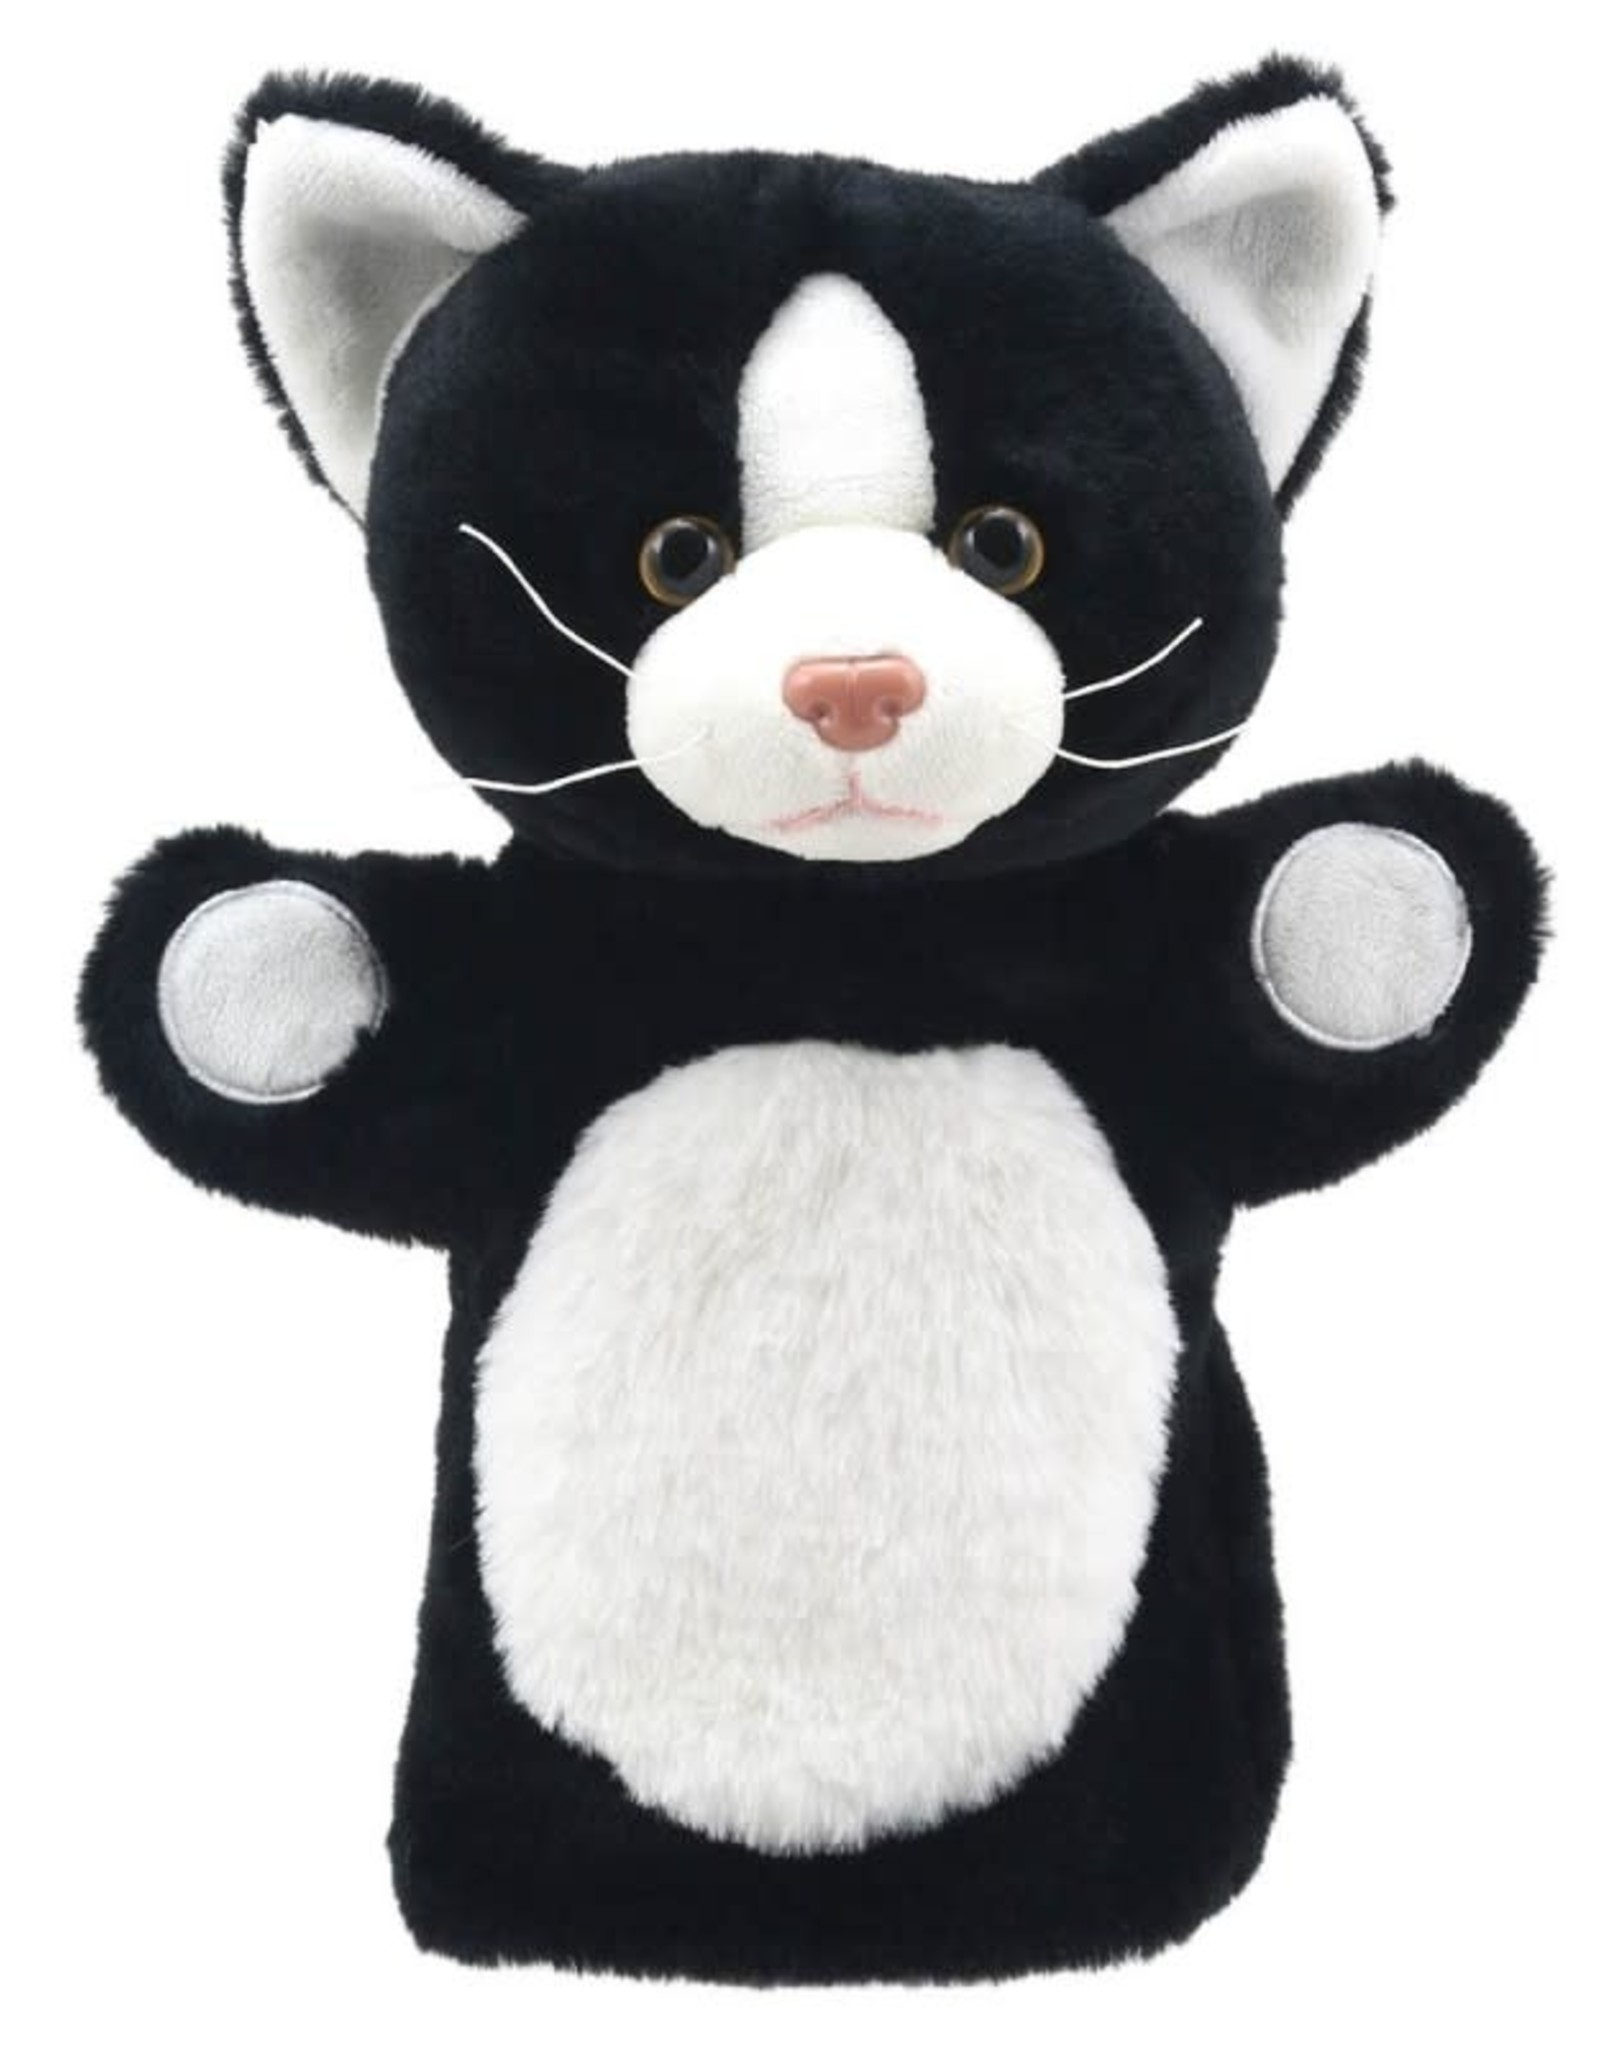 The Puppet Company Puppet Cat Black & White